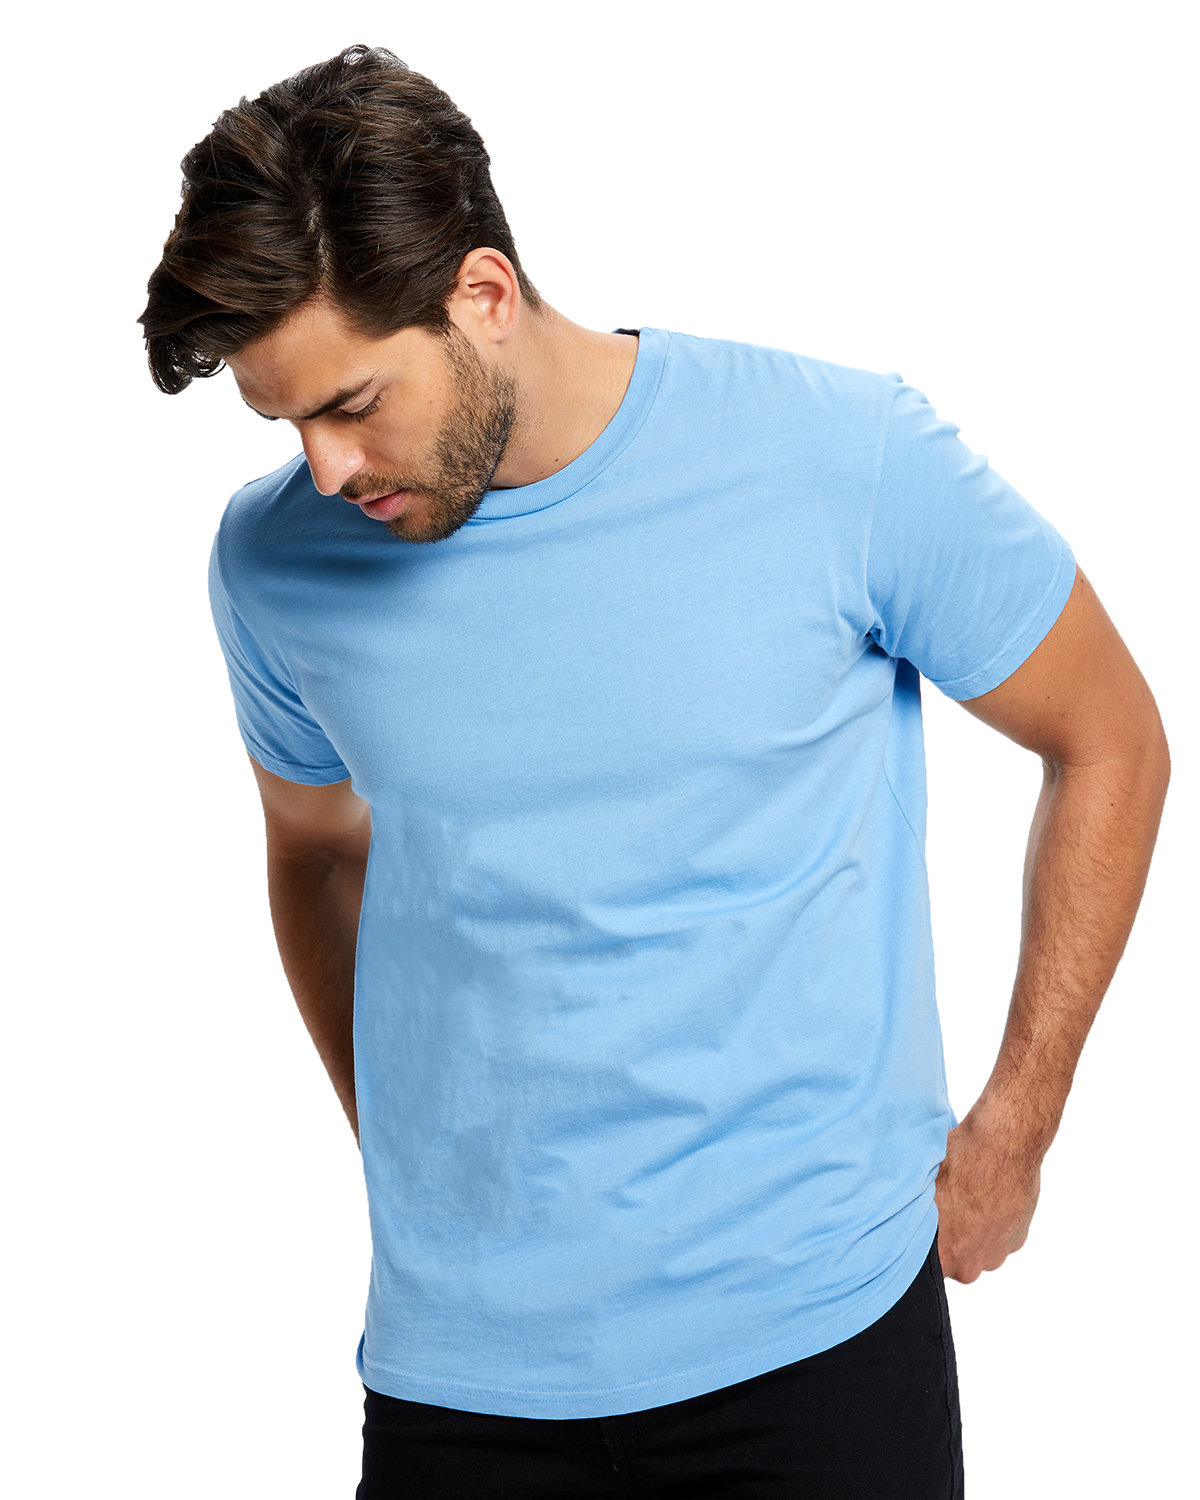 US Blanks Men's Made in USA Short Sleeve Crew T-Shirt BIG BLUE